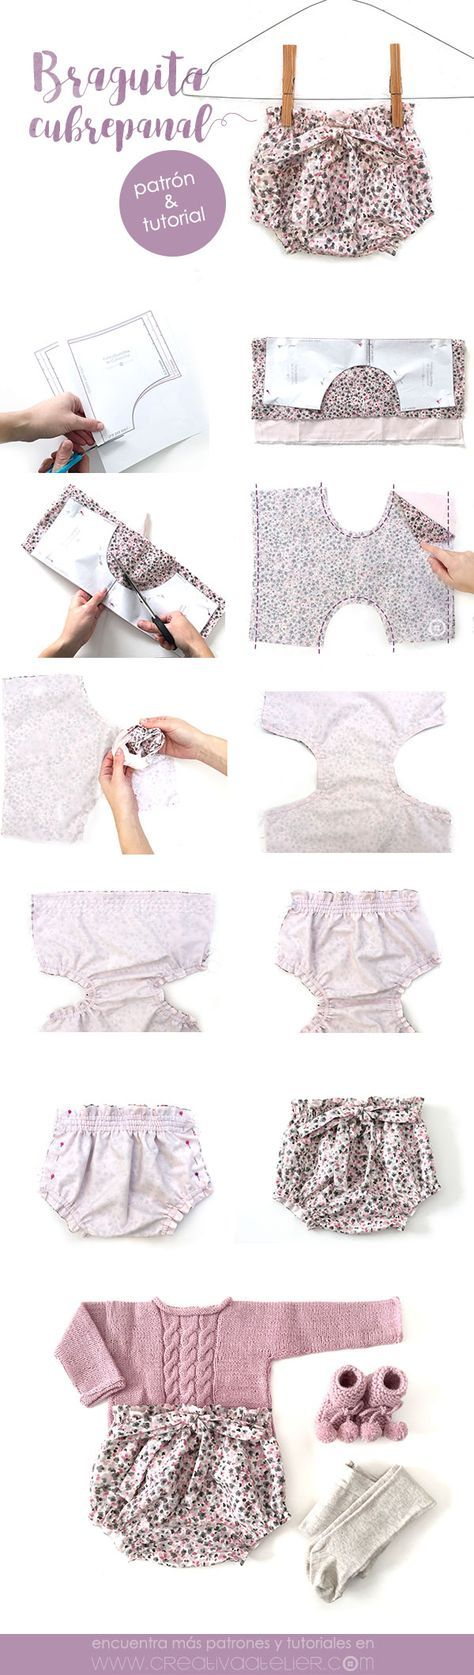 534 best Sewing for Baby/Kids images on Pinterest | Sewing for kids ...